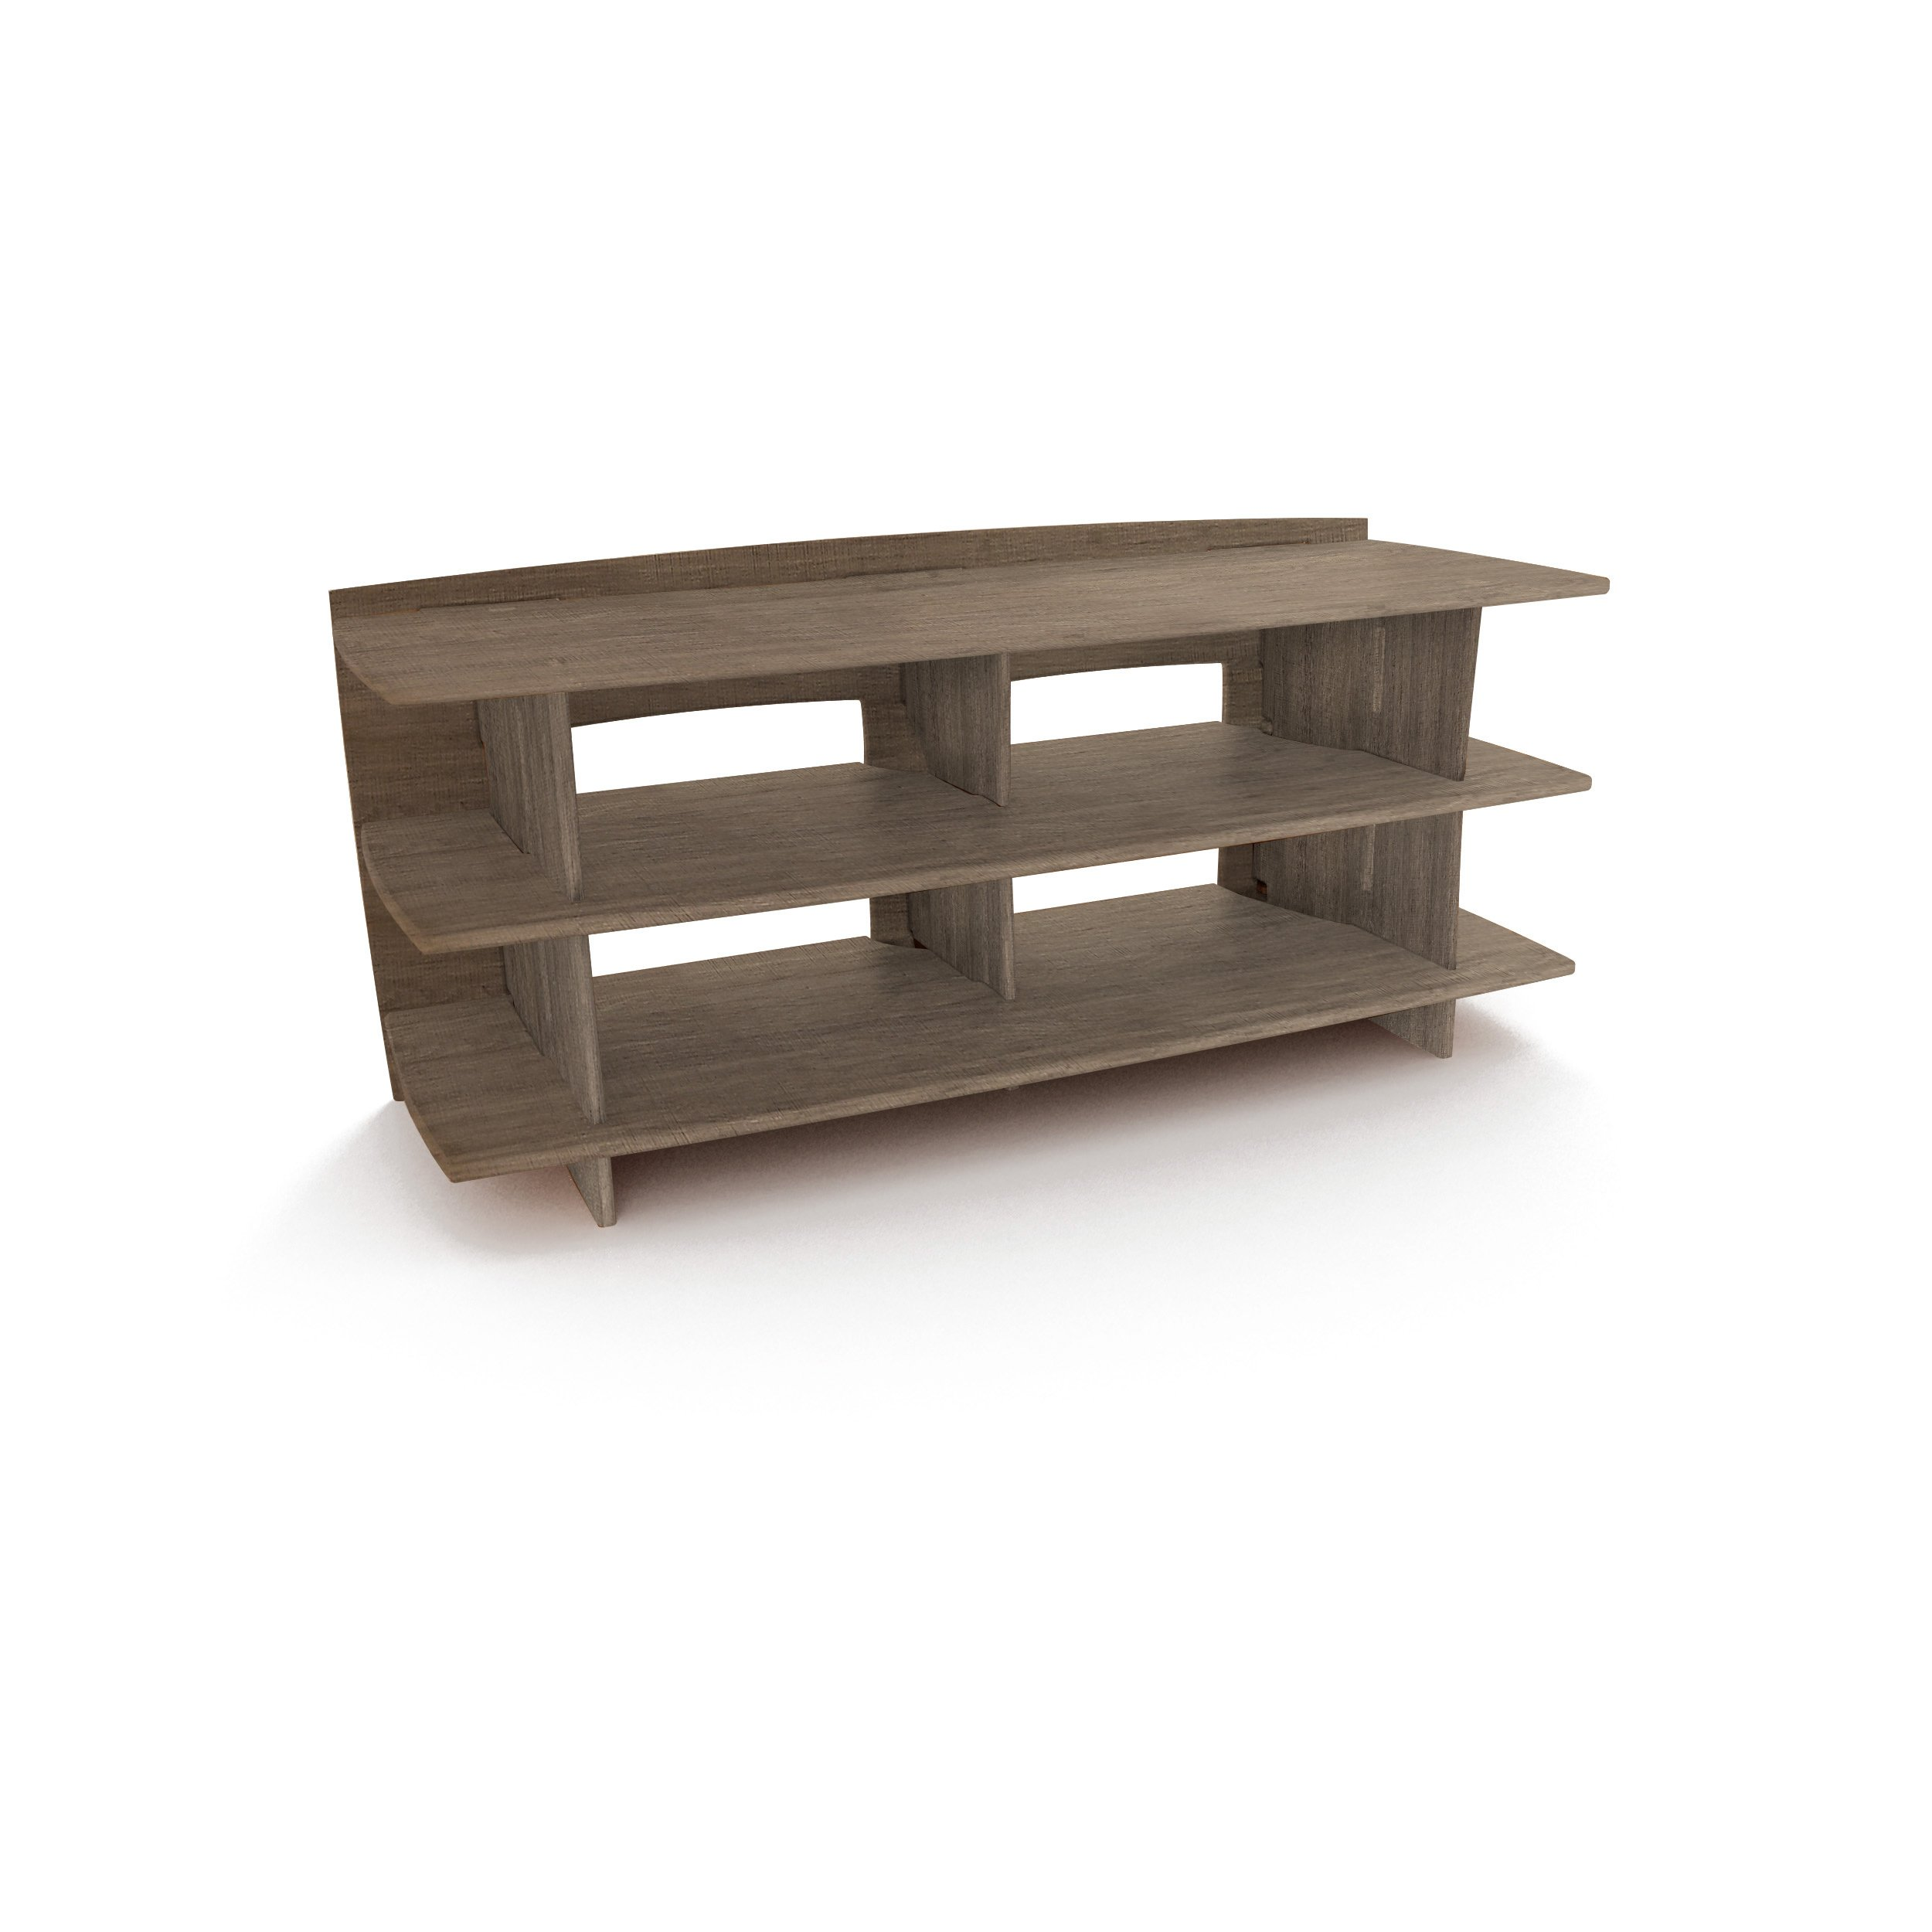 Legare Furniture, No Tools Assembly 53-Inch by 24-Inch Media Stand, Grey Driftwood by Legare (Image #1)